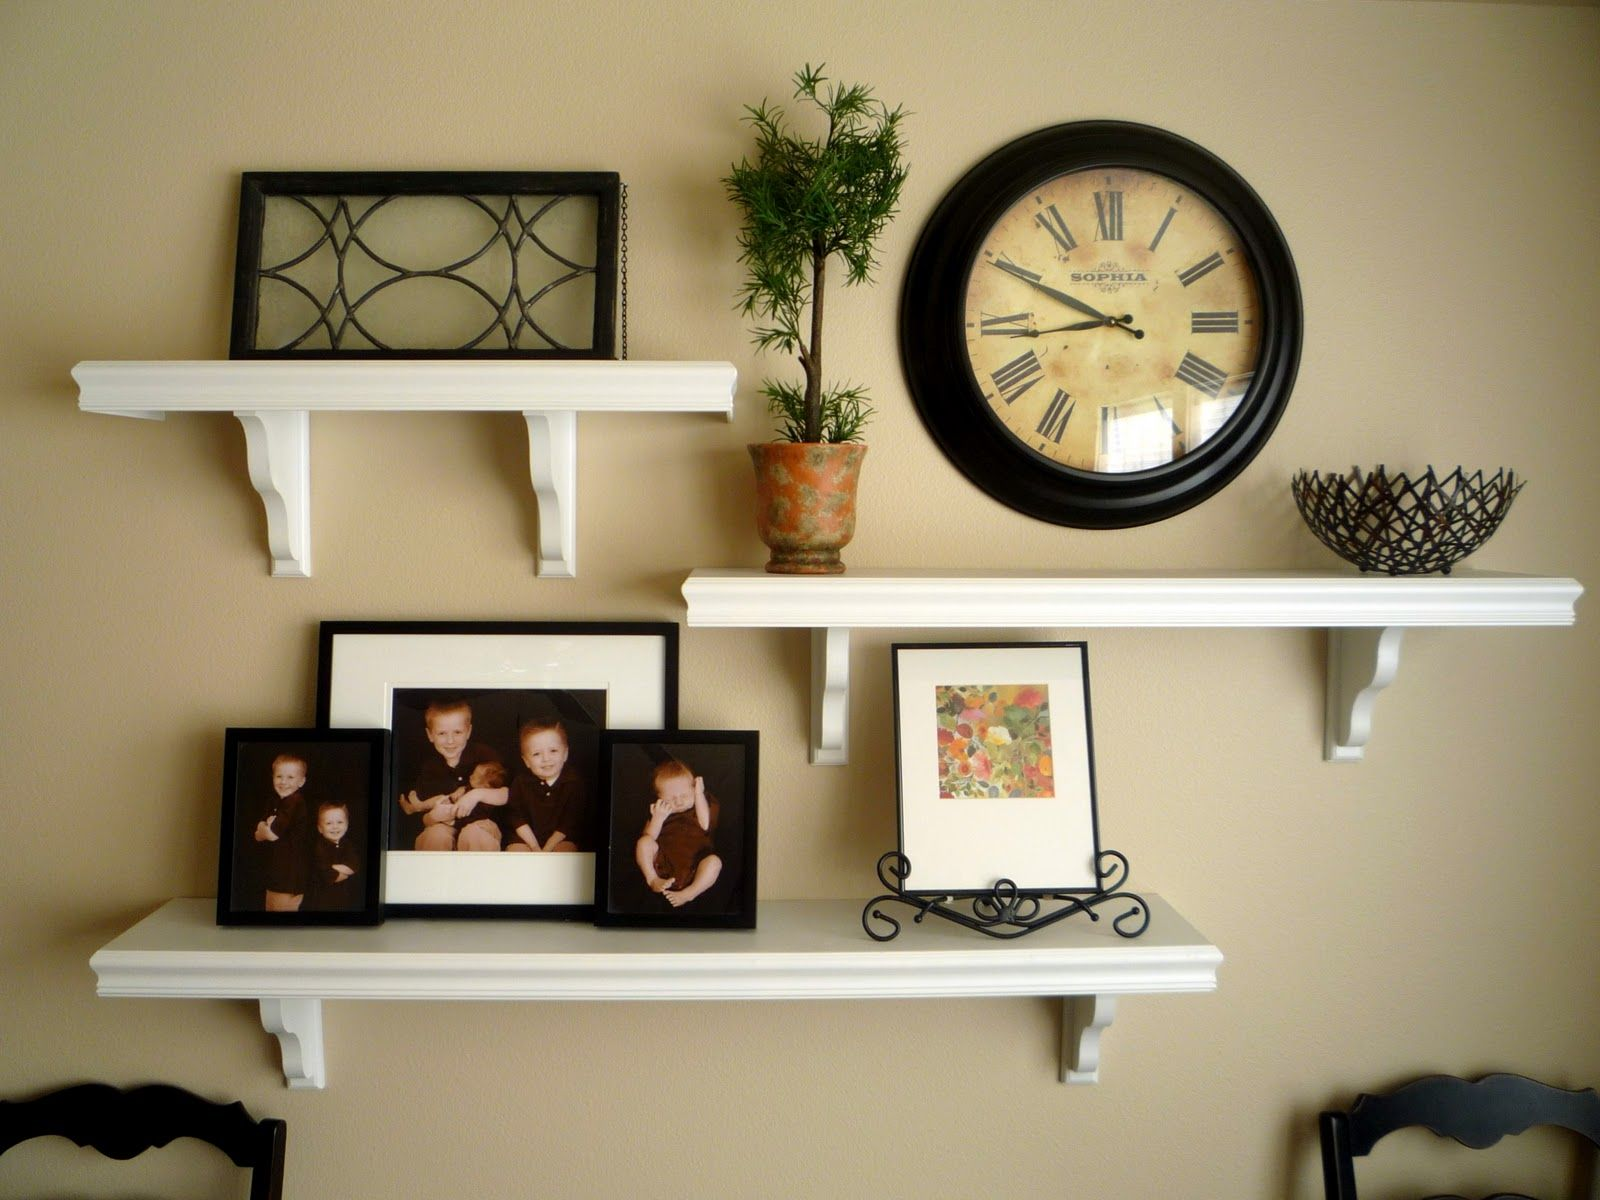 Stylish diy floating shelves wall shelves easy home - Bedroom wall shelves decorating ideas ...